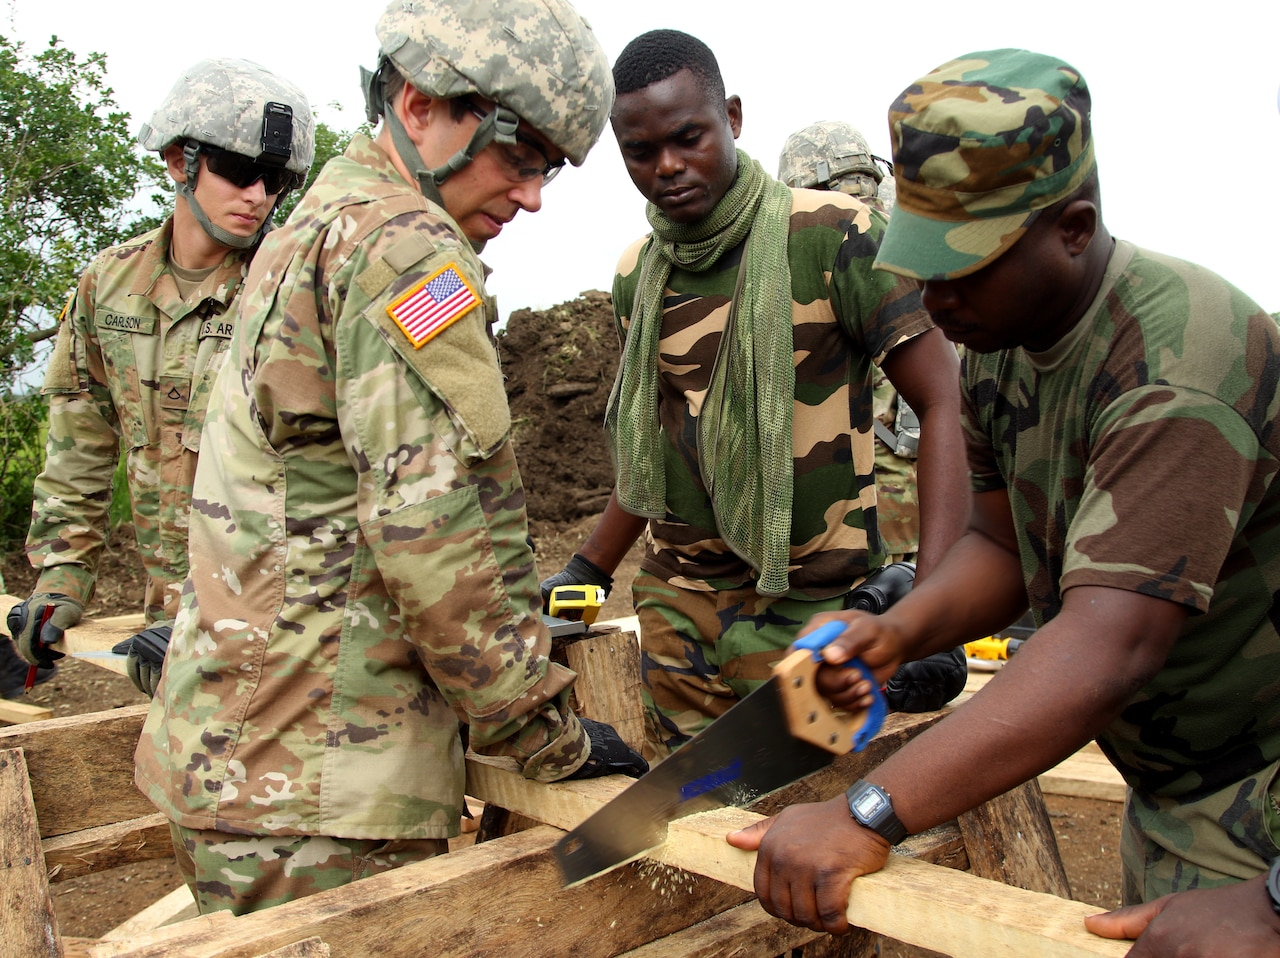 Guardsmen and Ghanaian troops gather to saw wood.